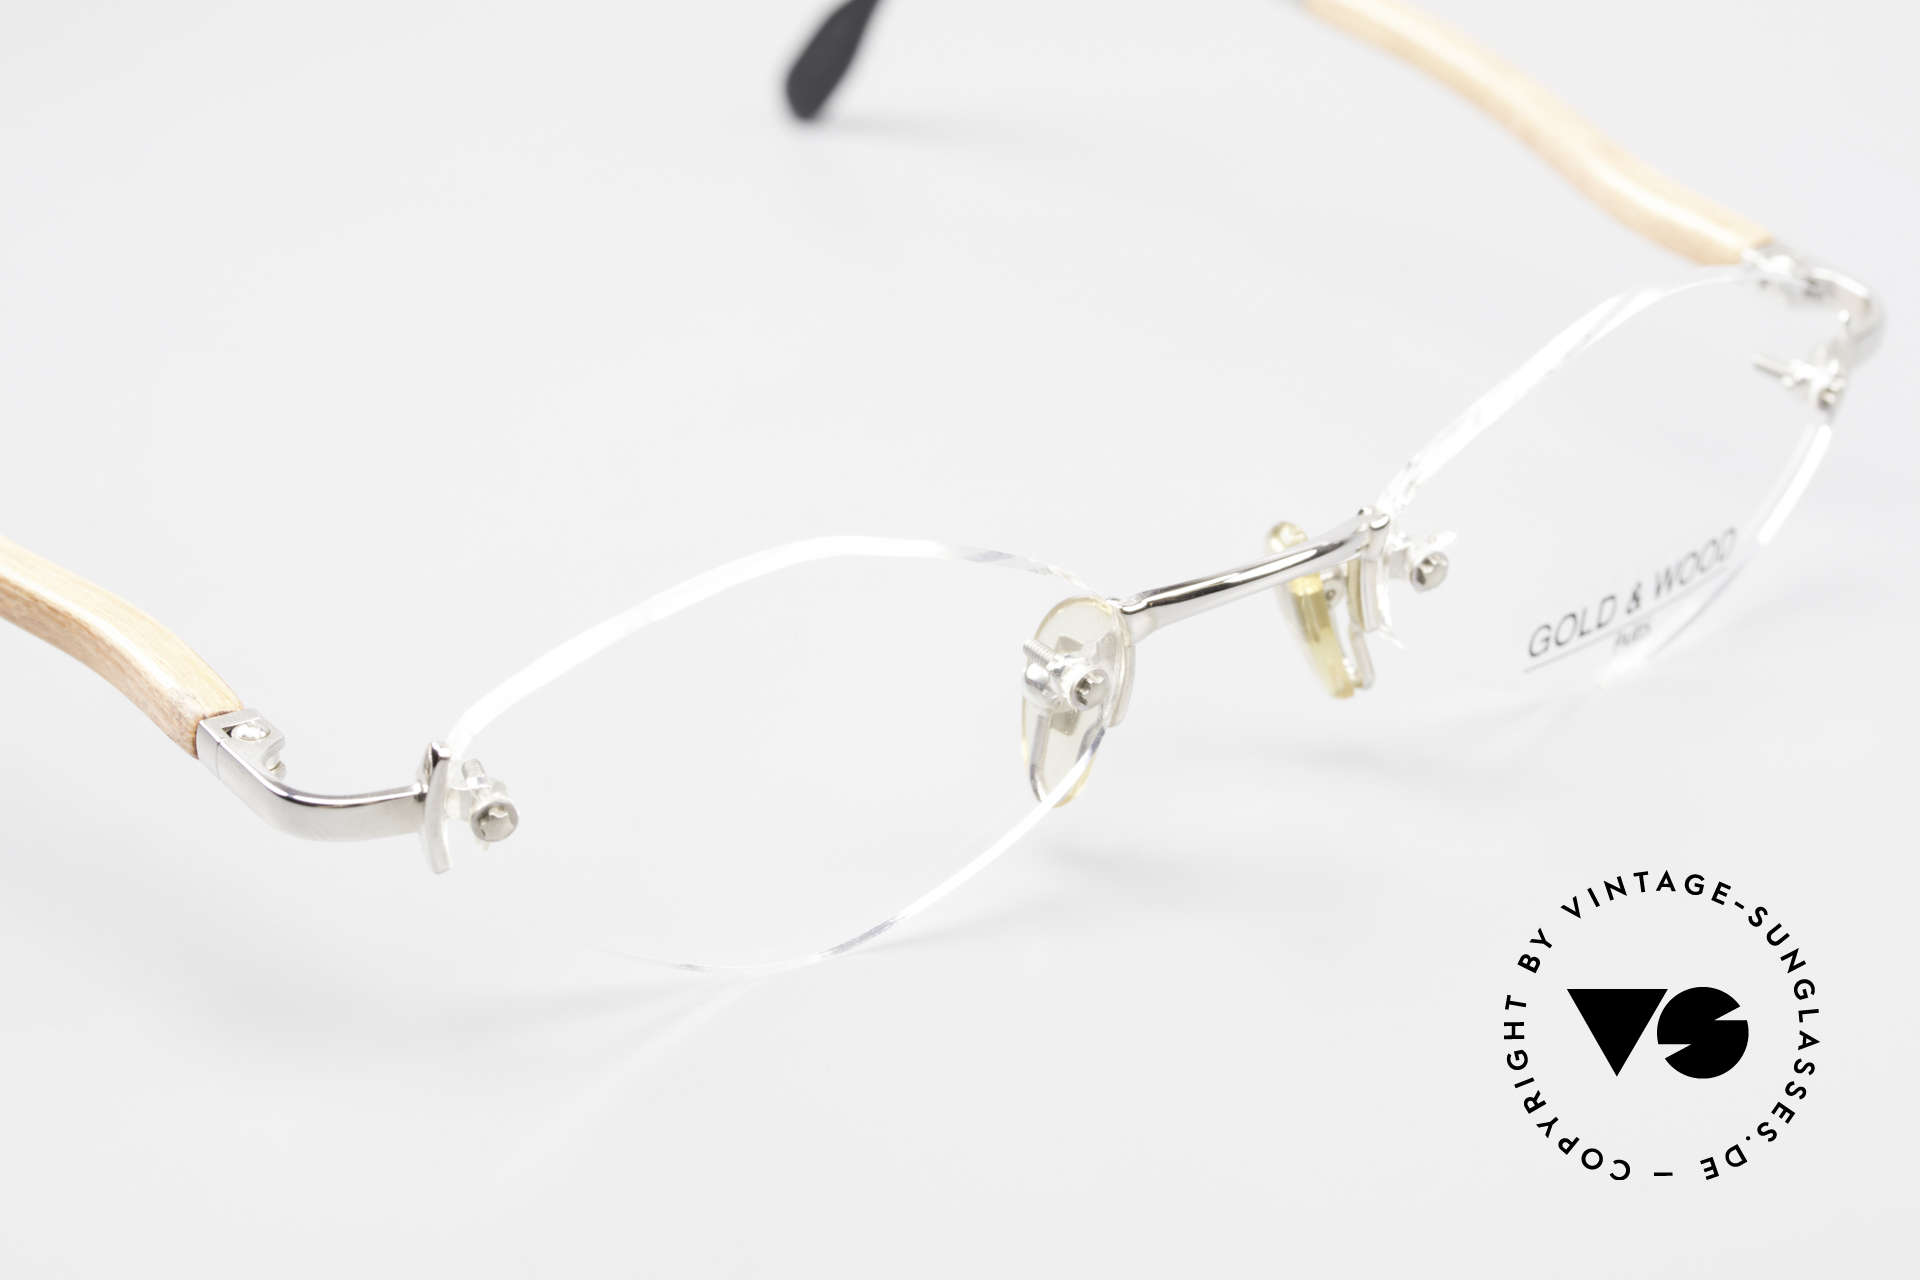 Gold & Wood S02 Luxury Rimless Spectacles, NO RETRO, but a precious 20 years old ORIGINAL, Made for Men and Women